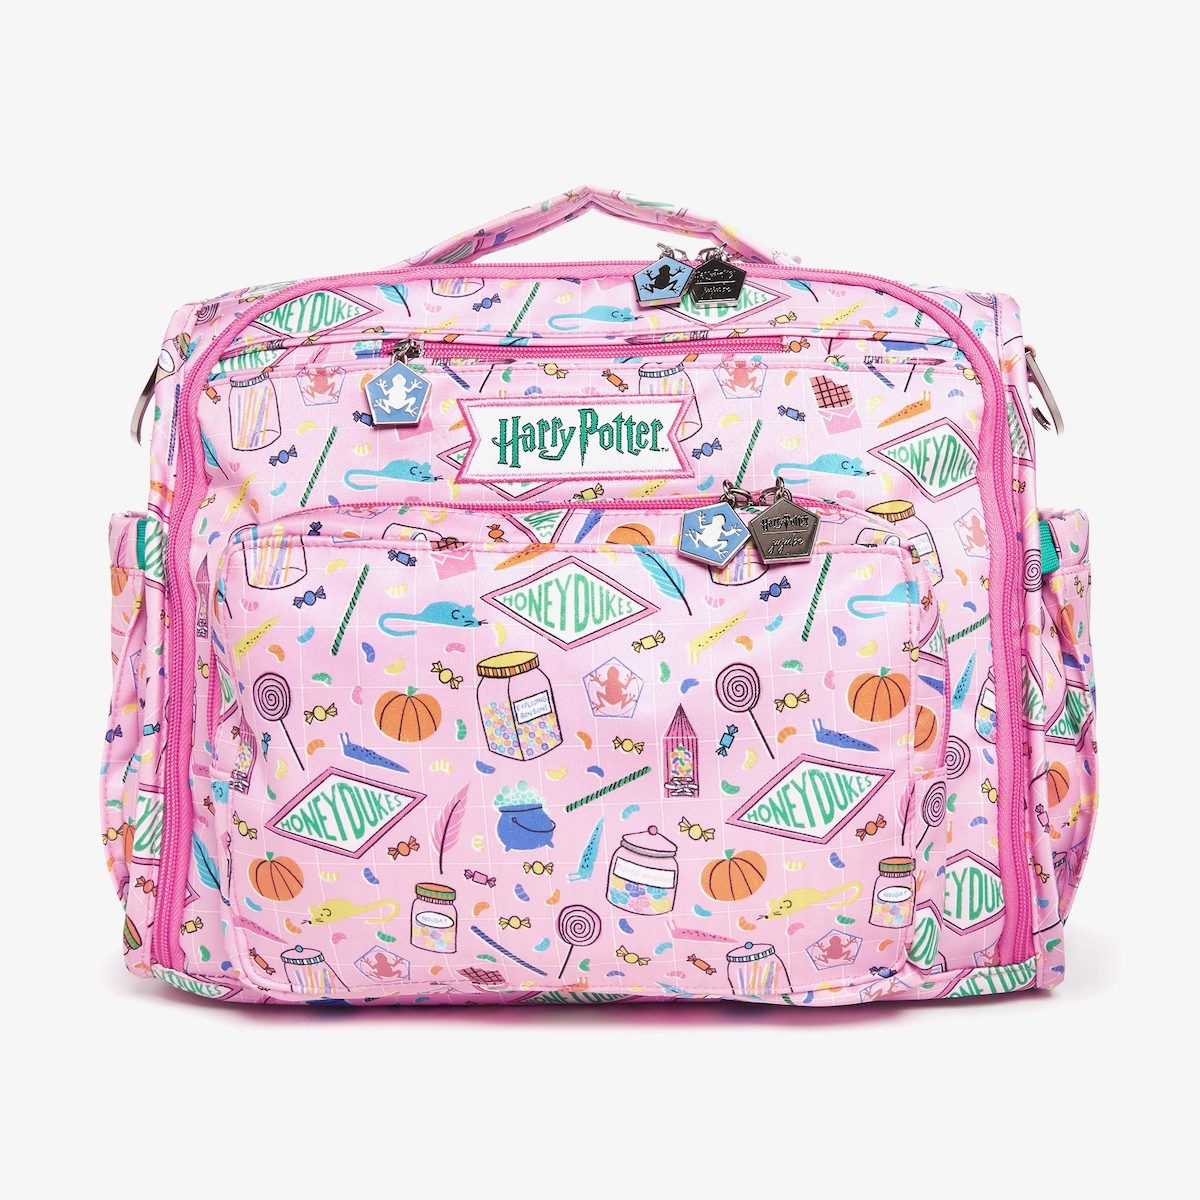 The Honeydukes BFF bag has seven interior pockets and insulated side pockets.